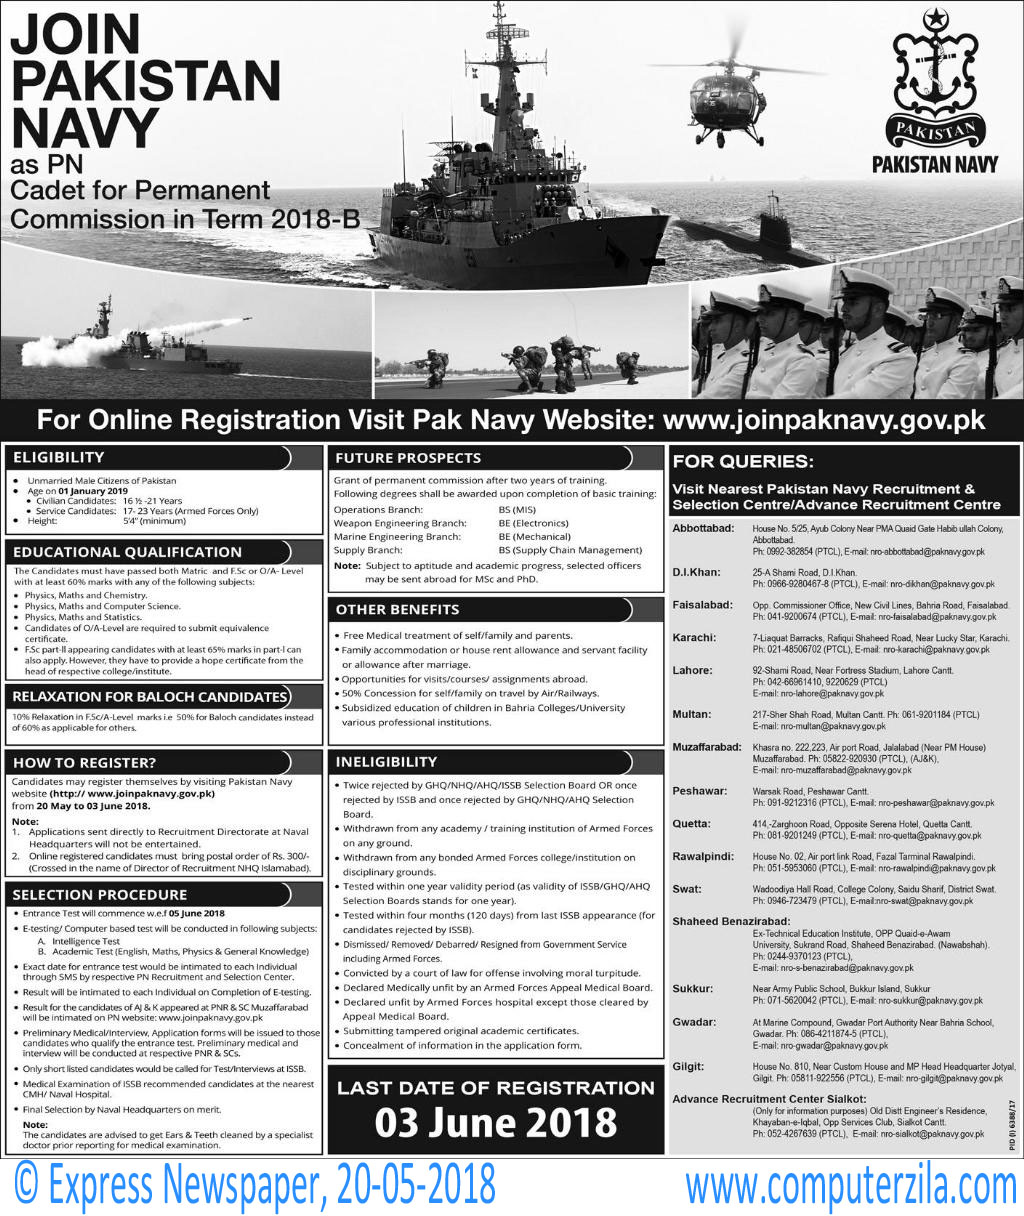 PN Cadet for Permanent Commission in Term 2018-B at Pakistan Navy